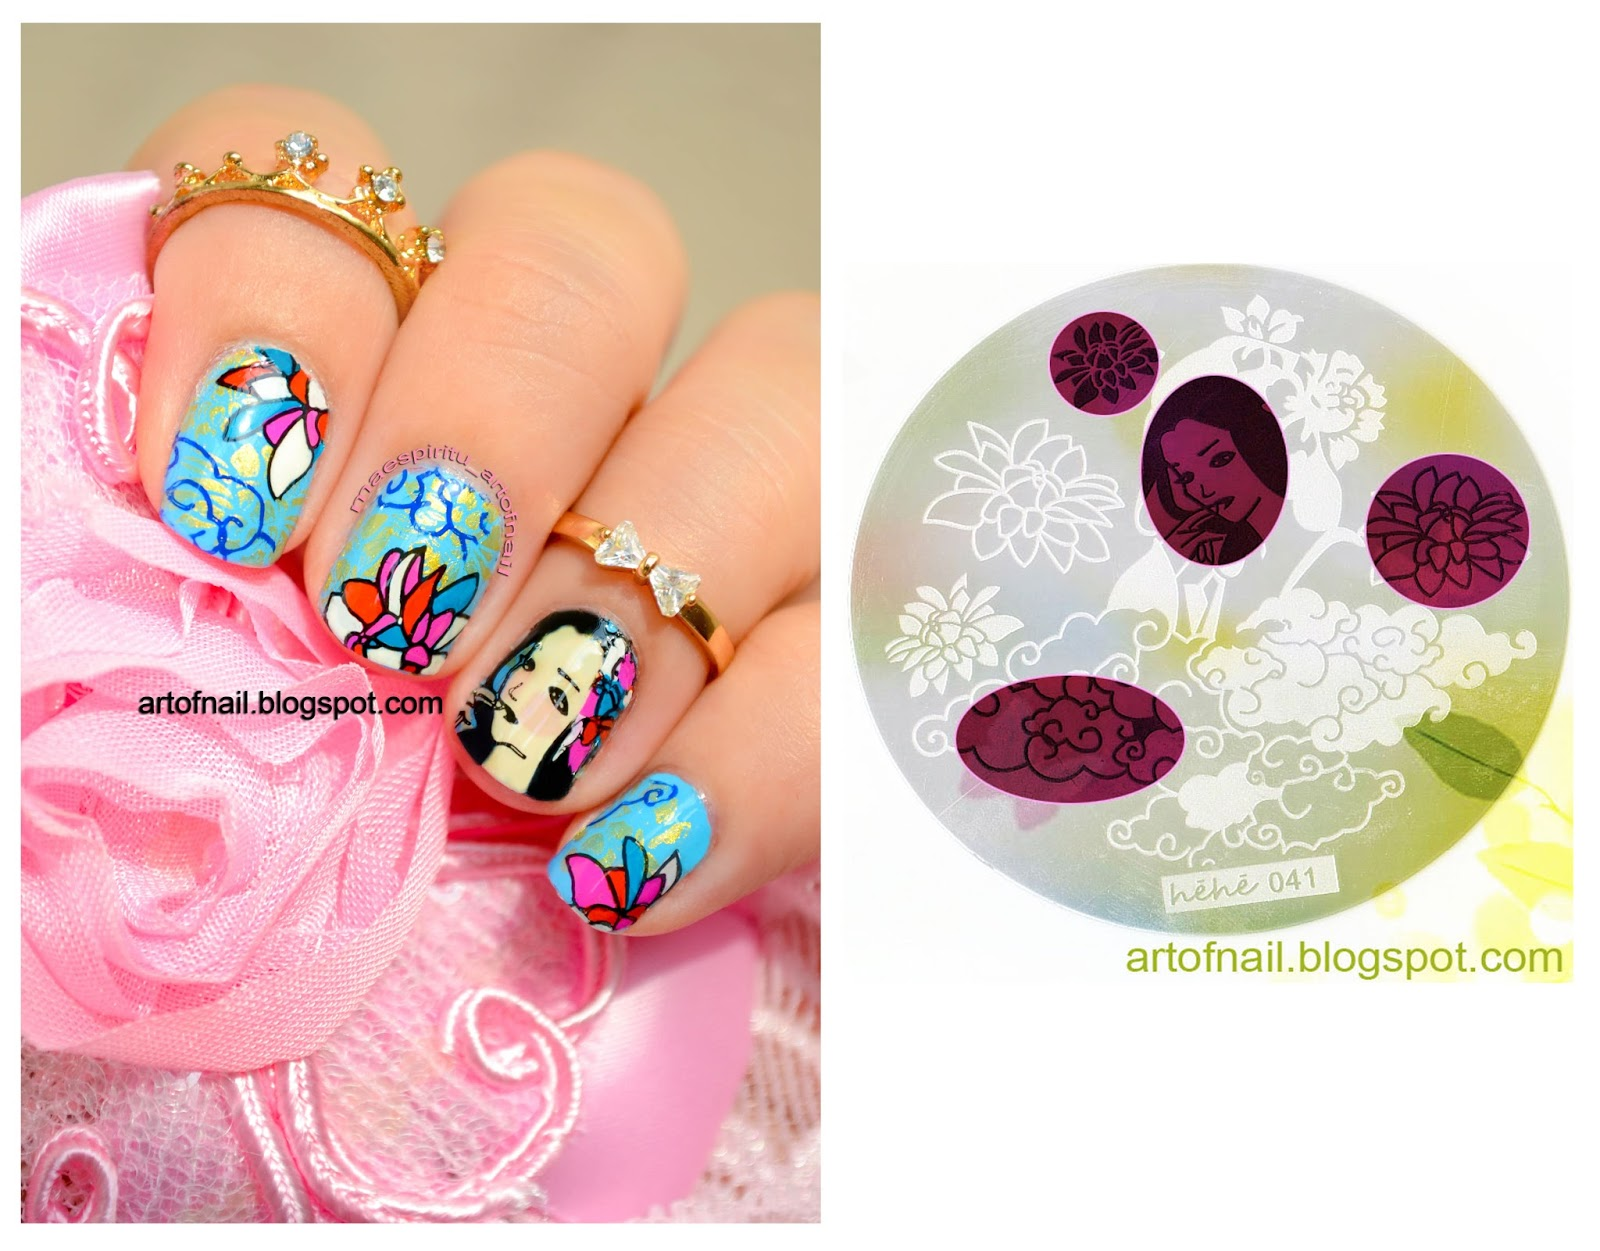 Art of nail october 2015 lotus cloud woman flower nail art stamp template image plate hehe041 299 usd prinsesfo Gallery